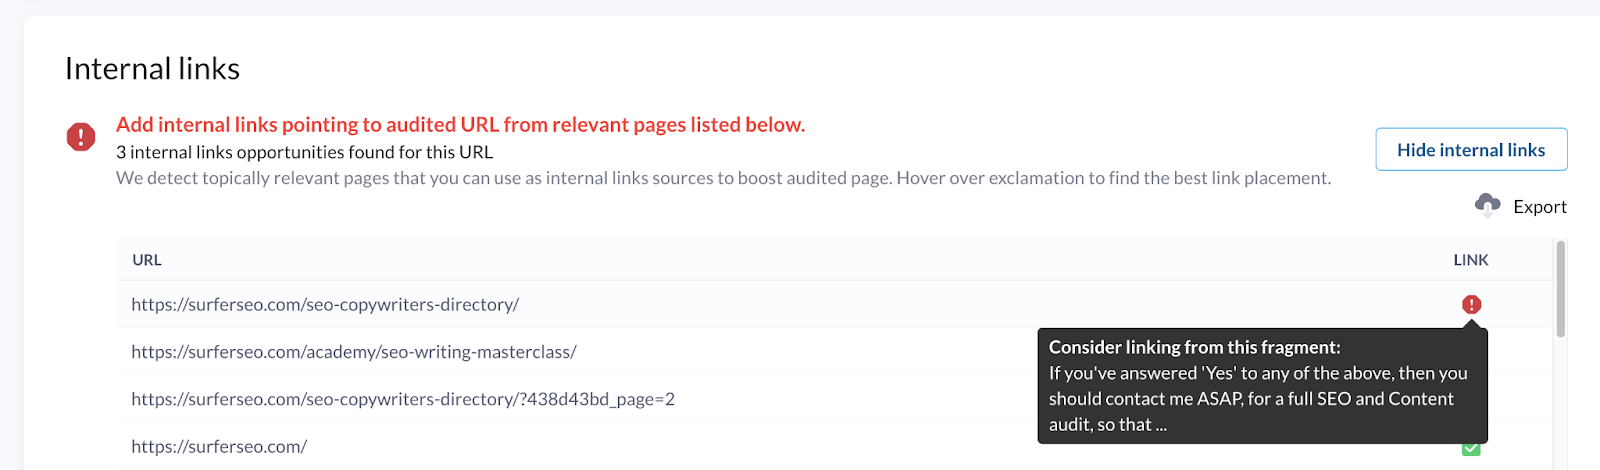 Internal links in audit - best placement for internal link